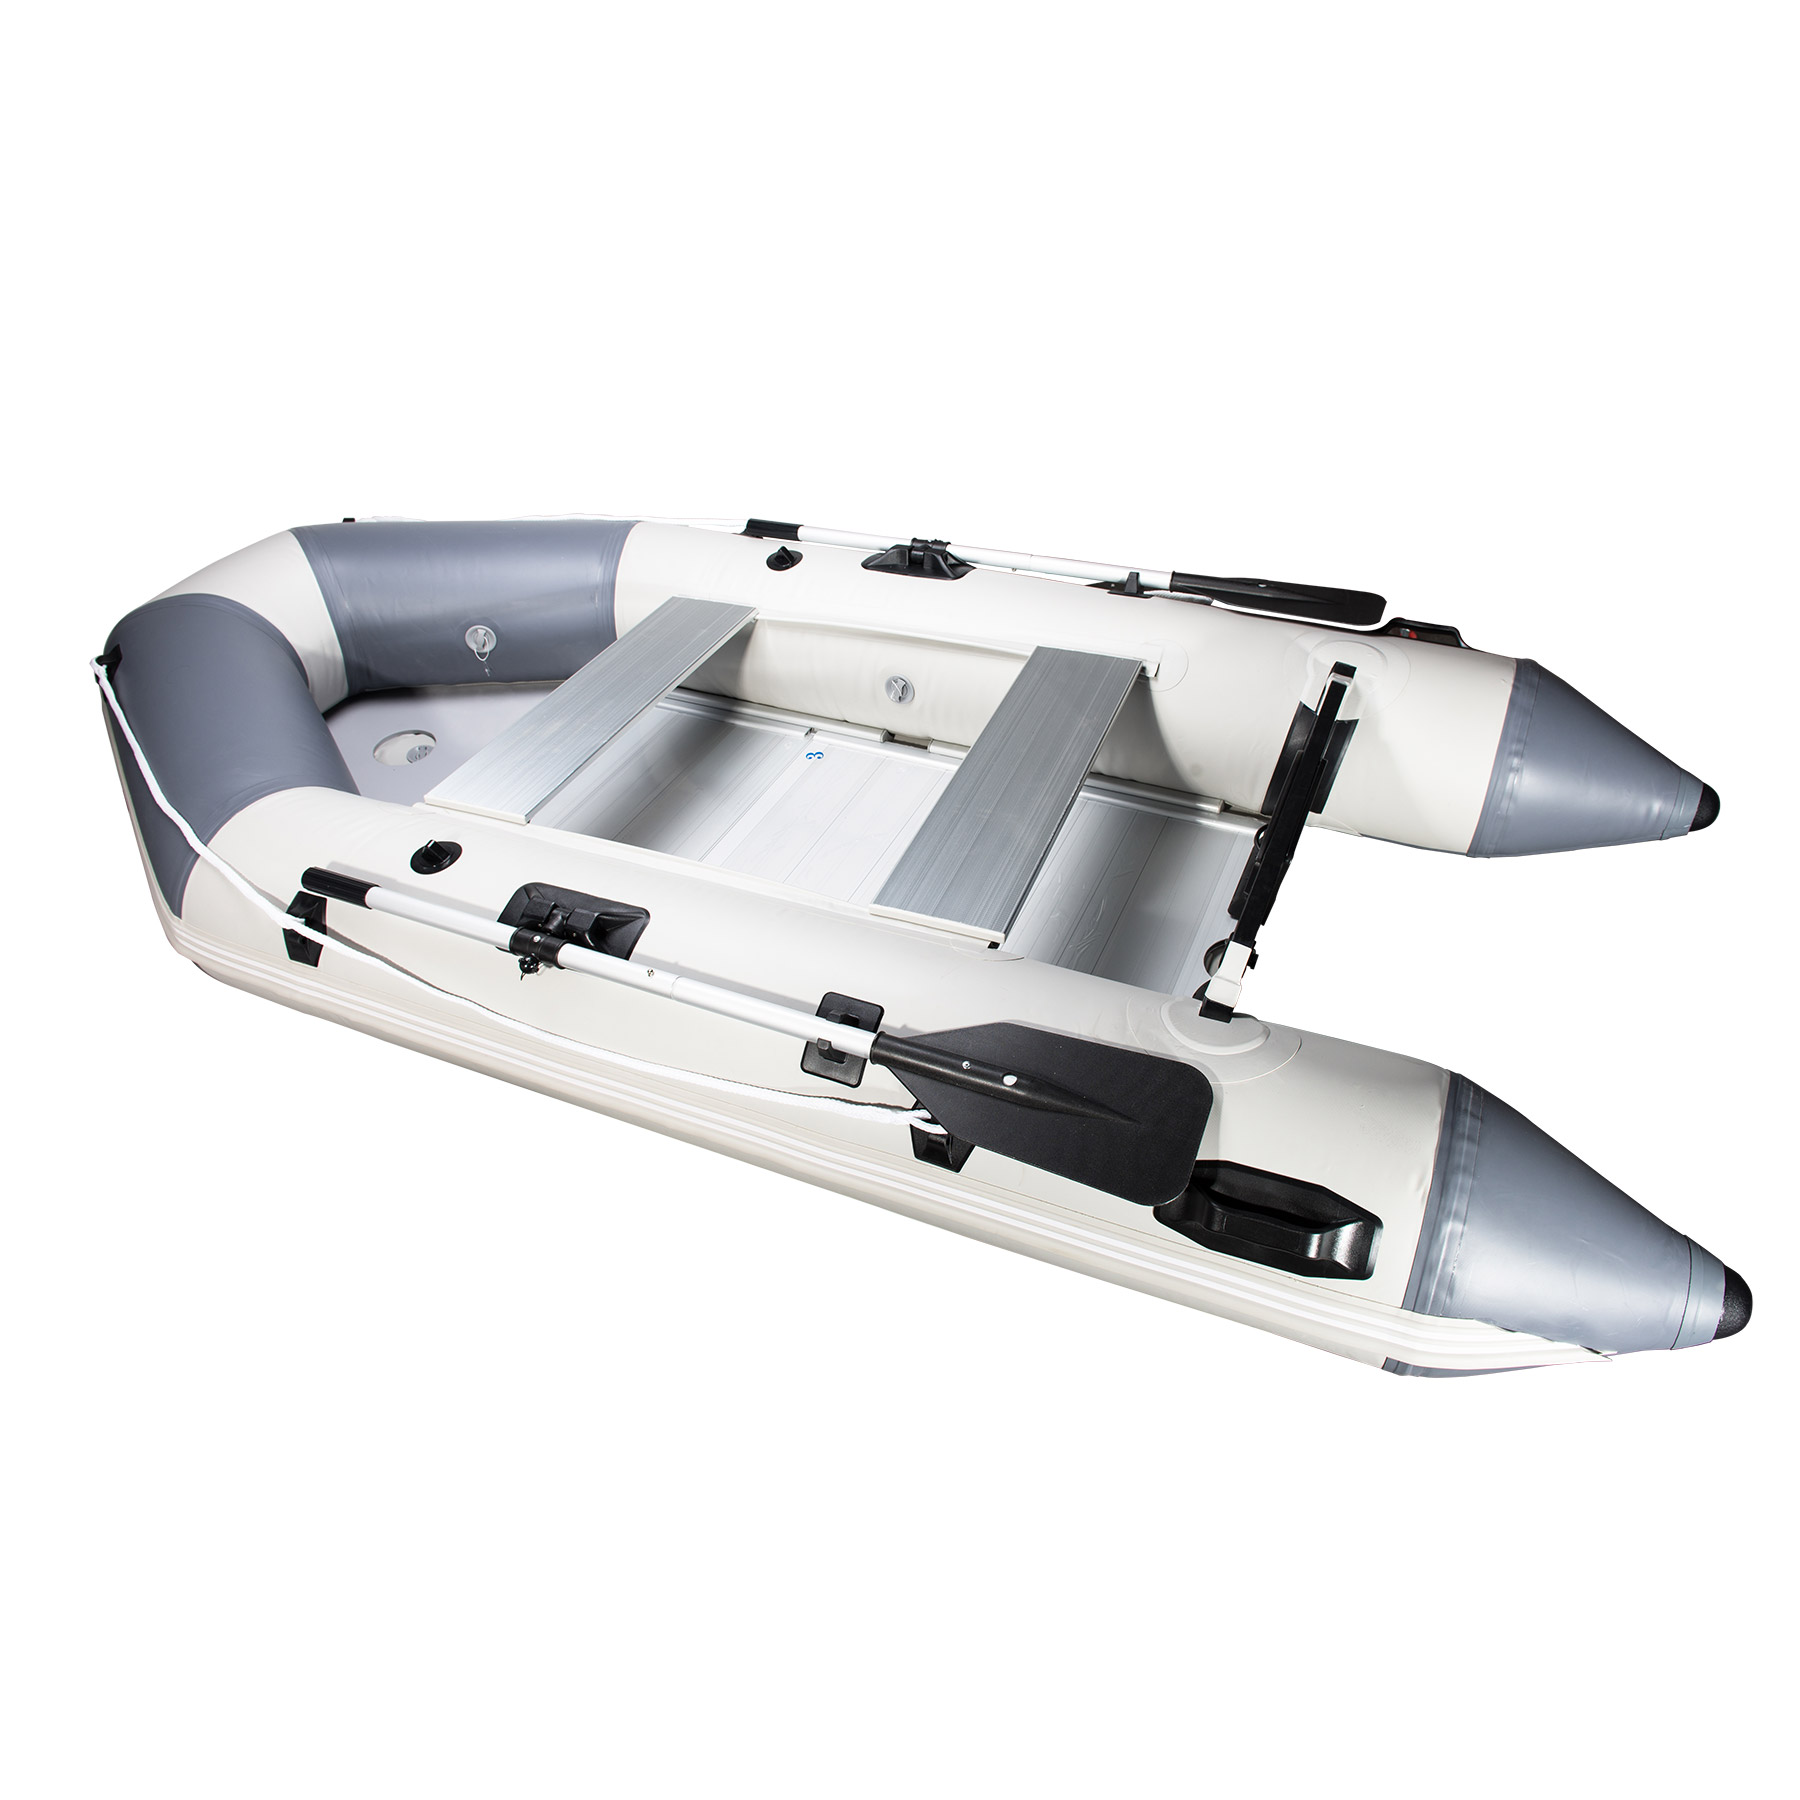 Click here to buy PVC Recreational Fishing Inflatable Boat Dinghy 10.8 Feet Pneumatic Portable Boat.